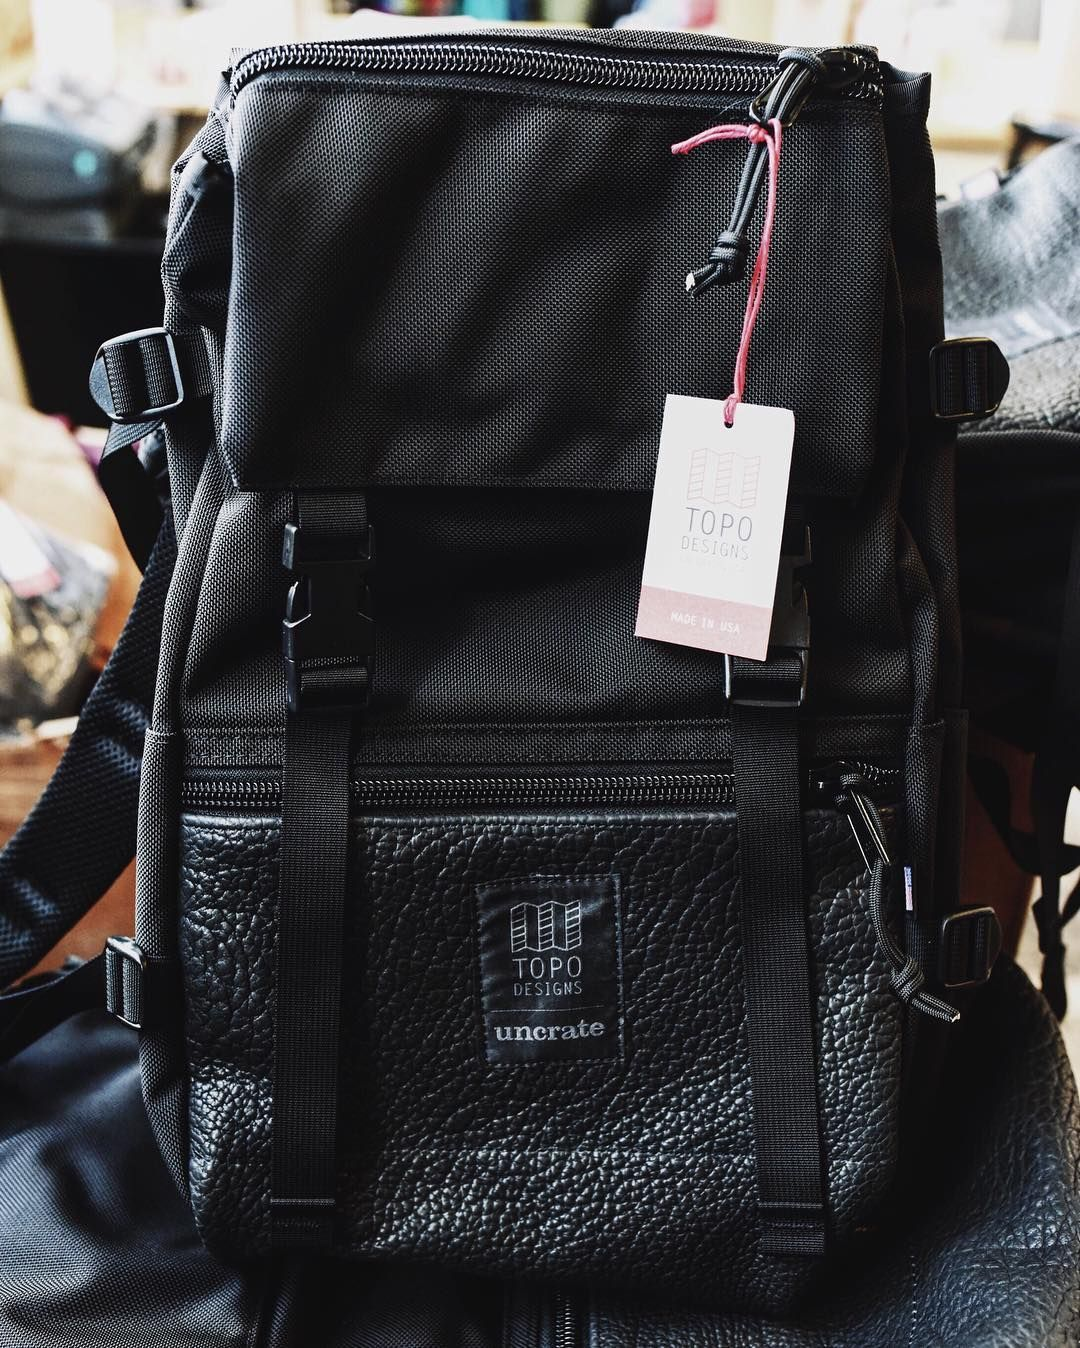 Topo Designs x Uncrate Rover Pack  Combining our signature